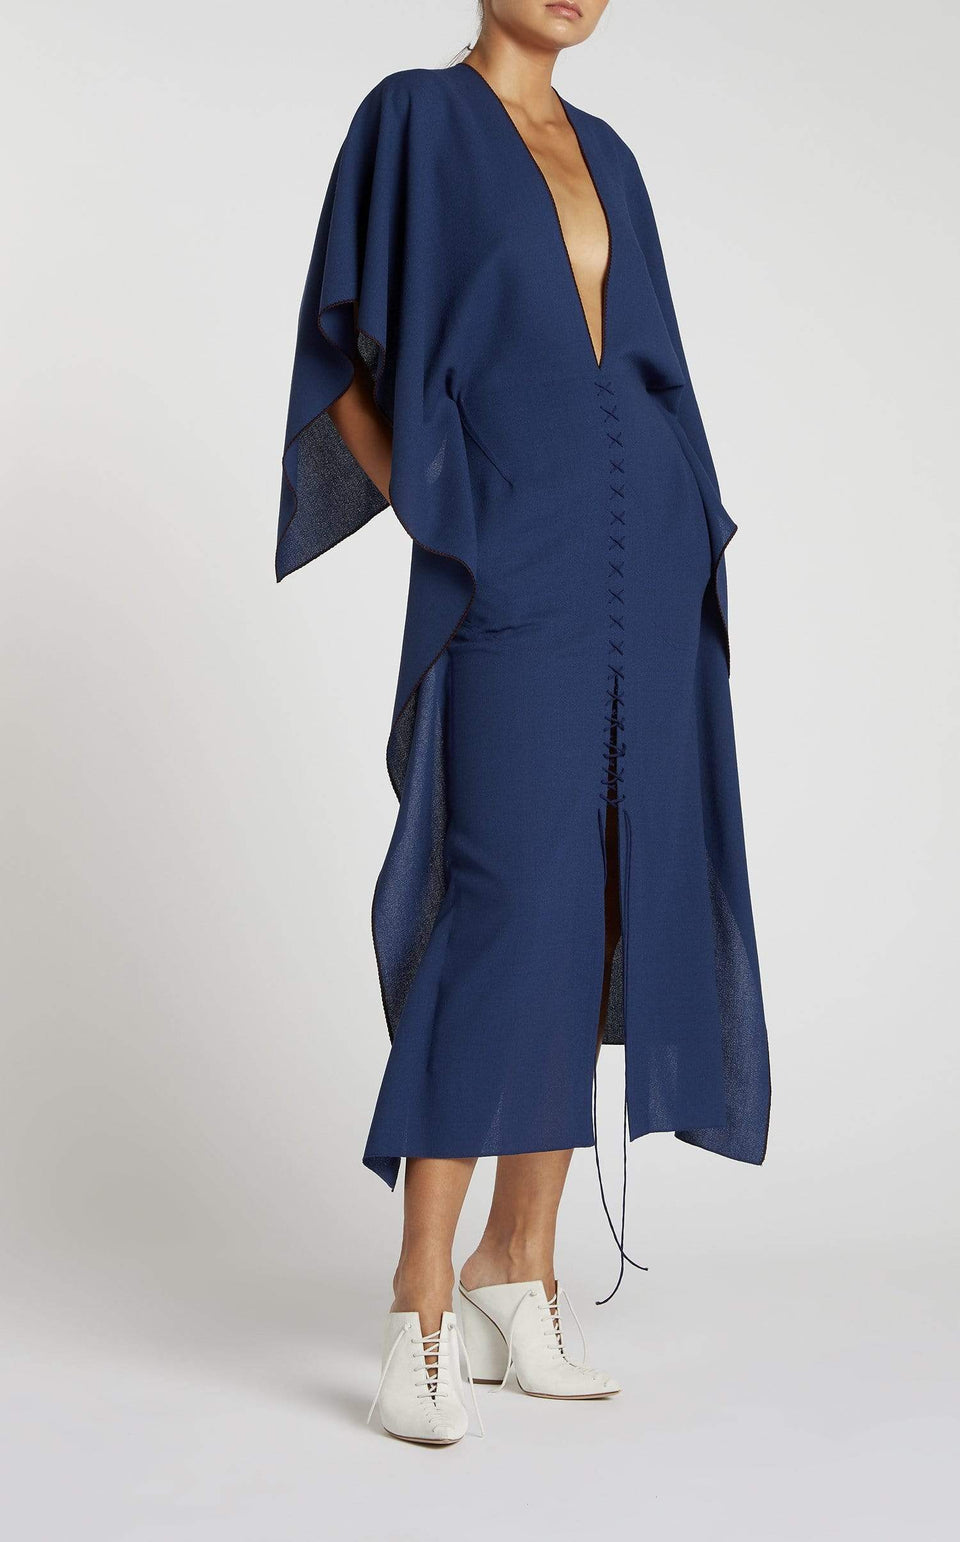 Adamson Dress In Capri Blue from Roland Mouret